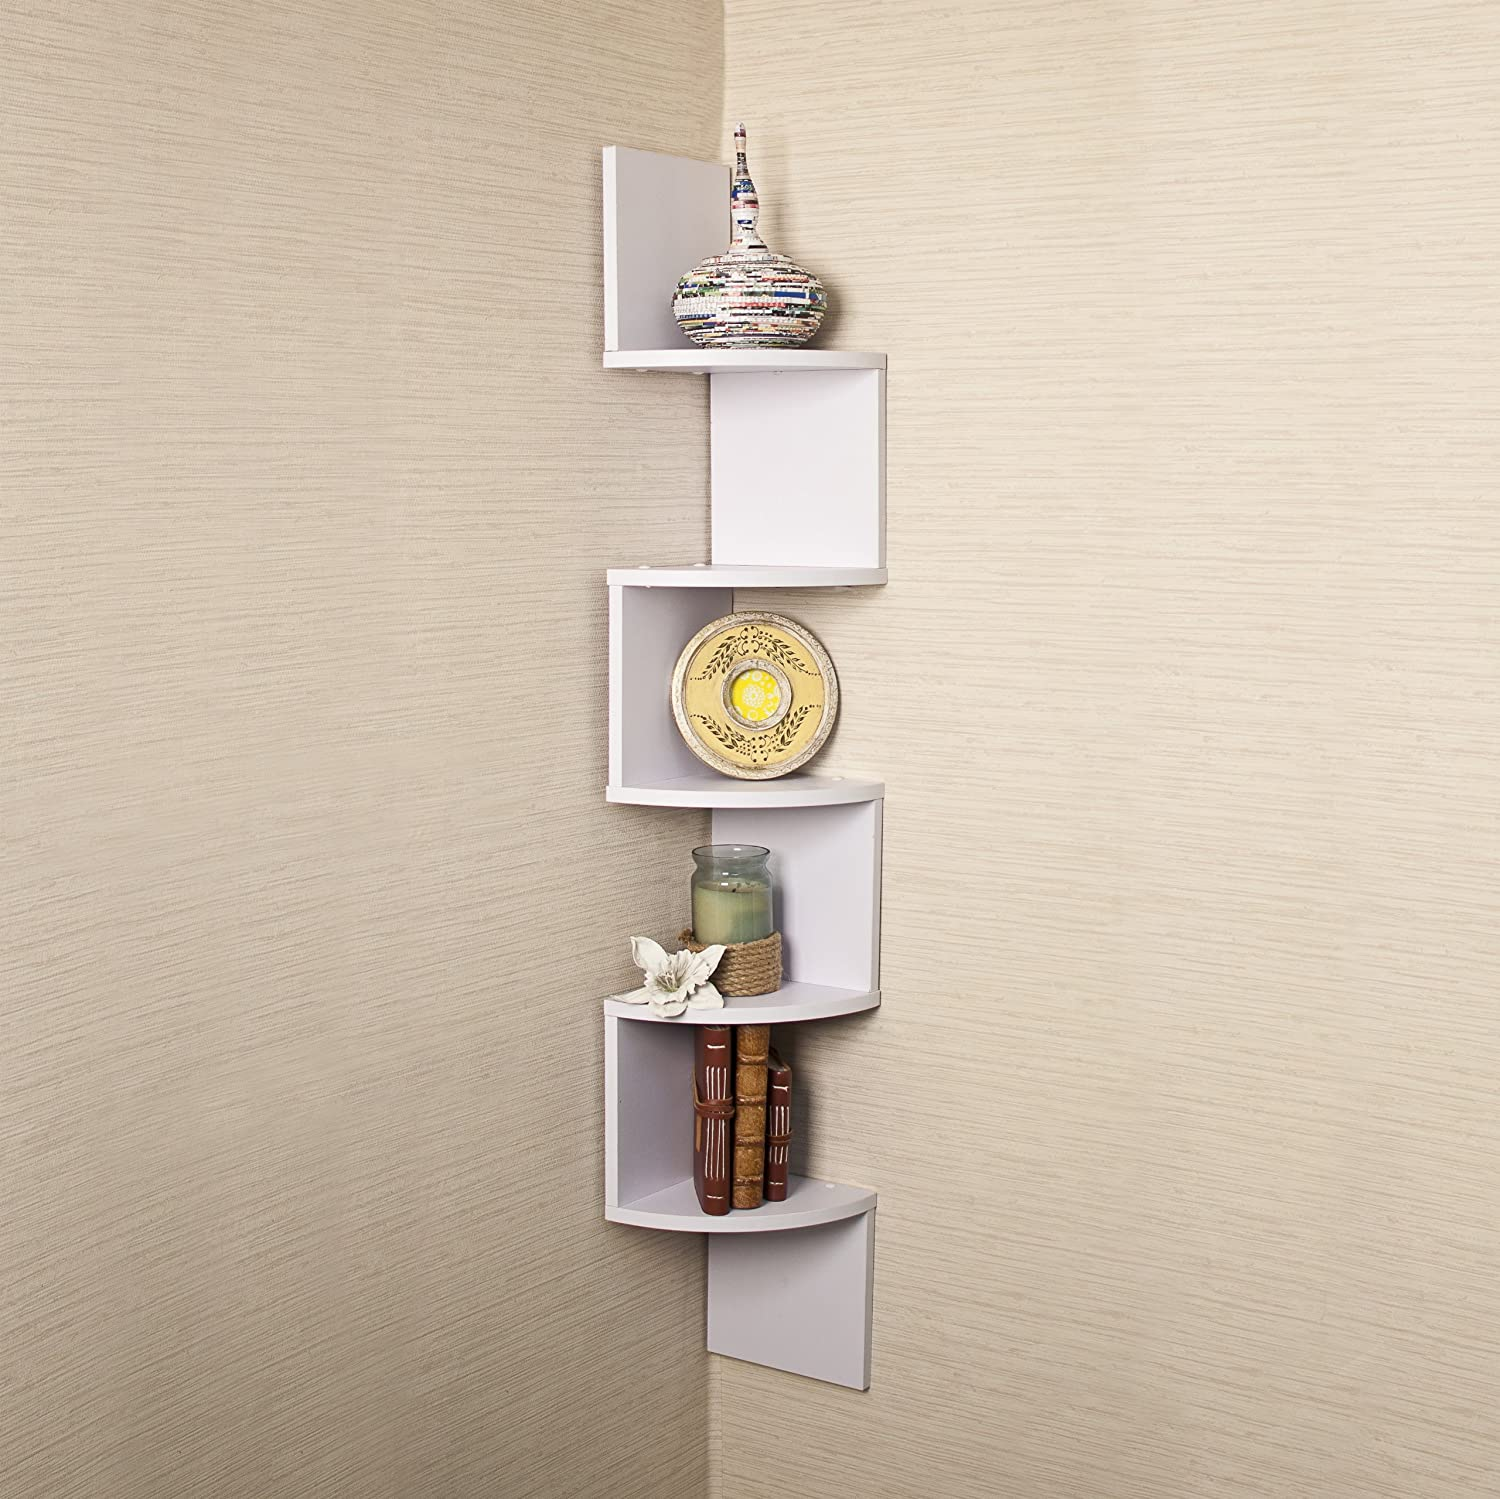 Diagenesis unique wall decor shelves for Decoration shelf